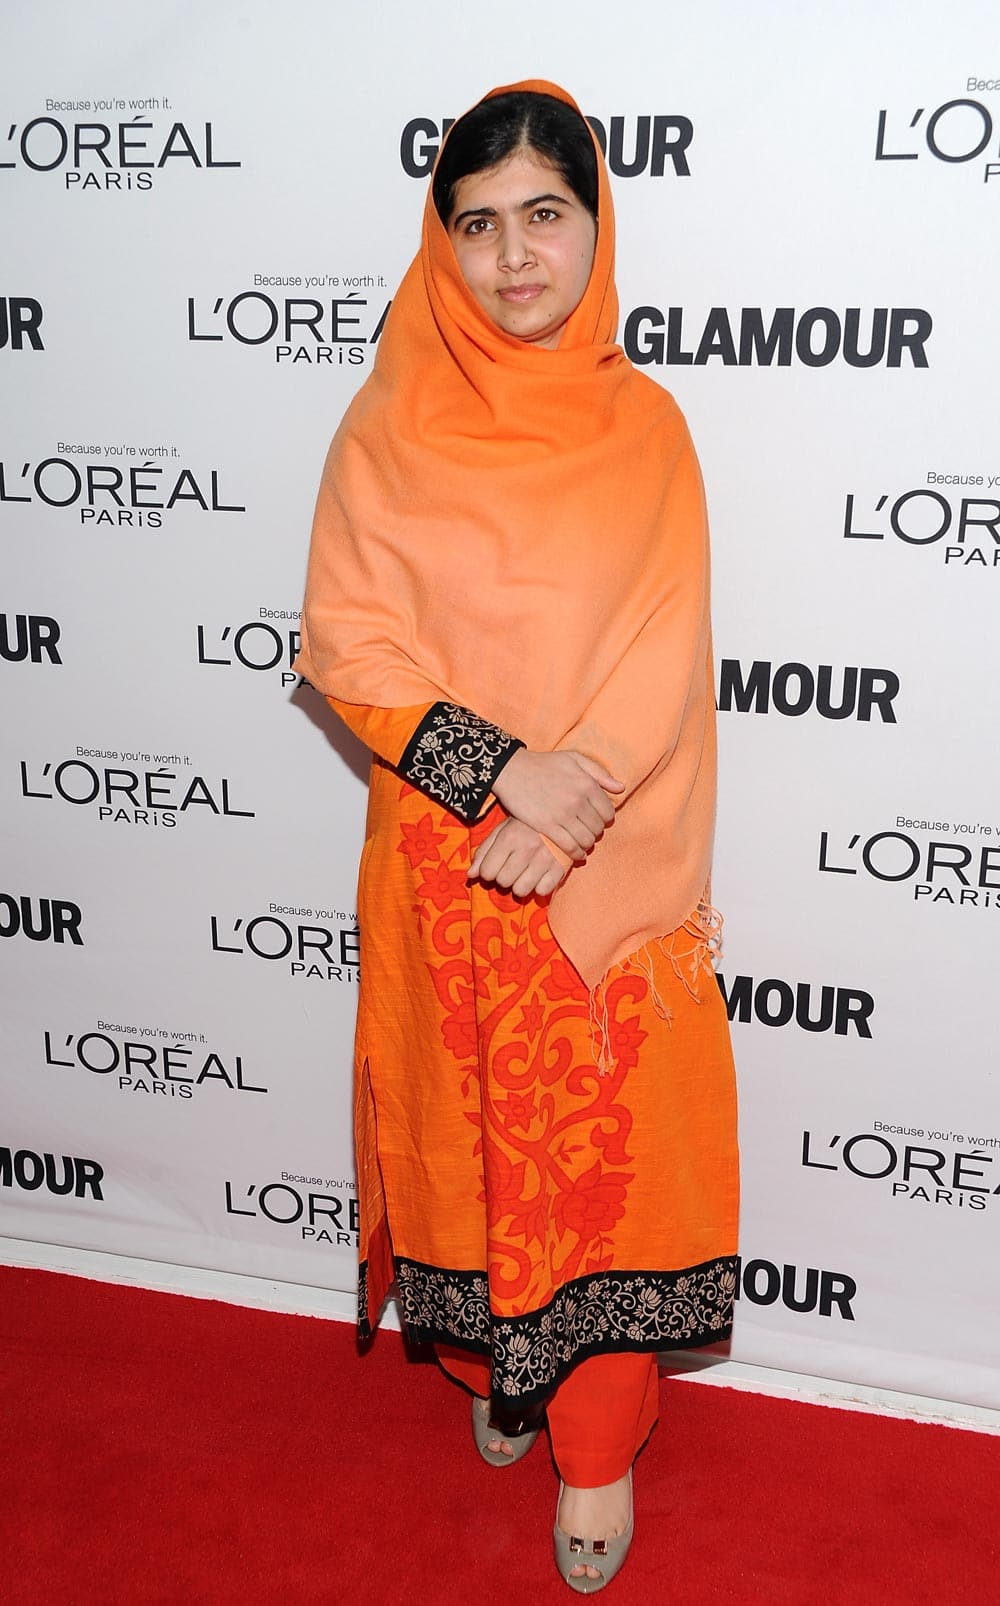 Malala Yousafzai attends the 23rd Annual Glamour Women of the Year Awards hosted by Glamour Magazine at Carnegie Hall, in New York.